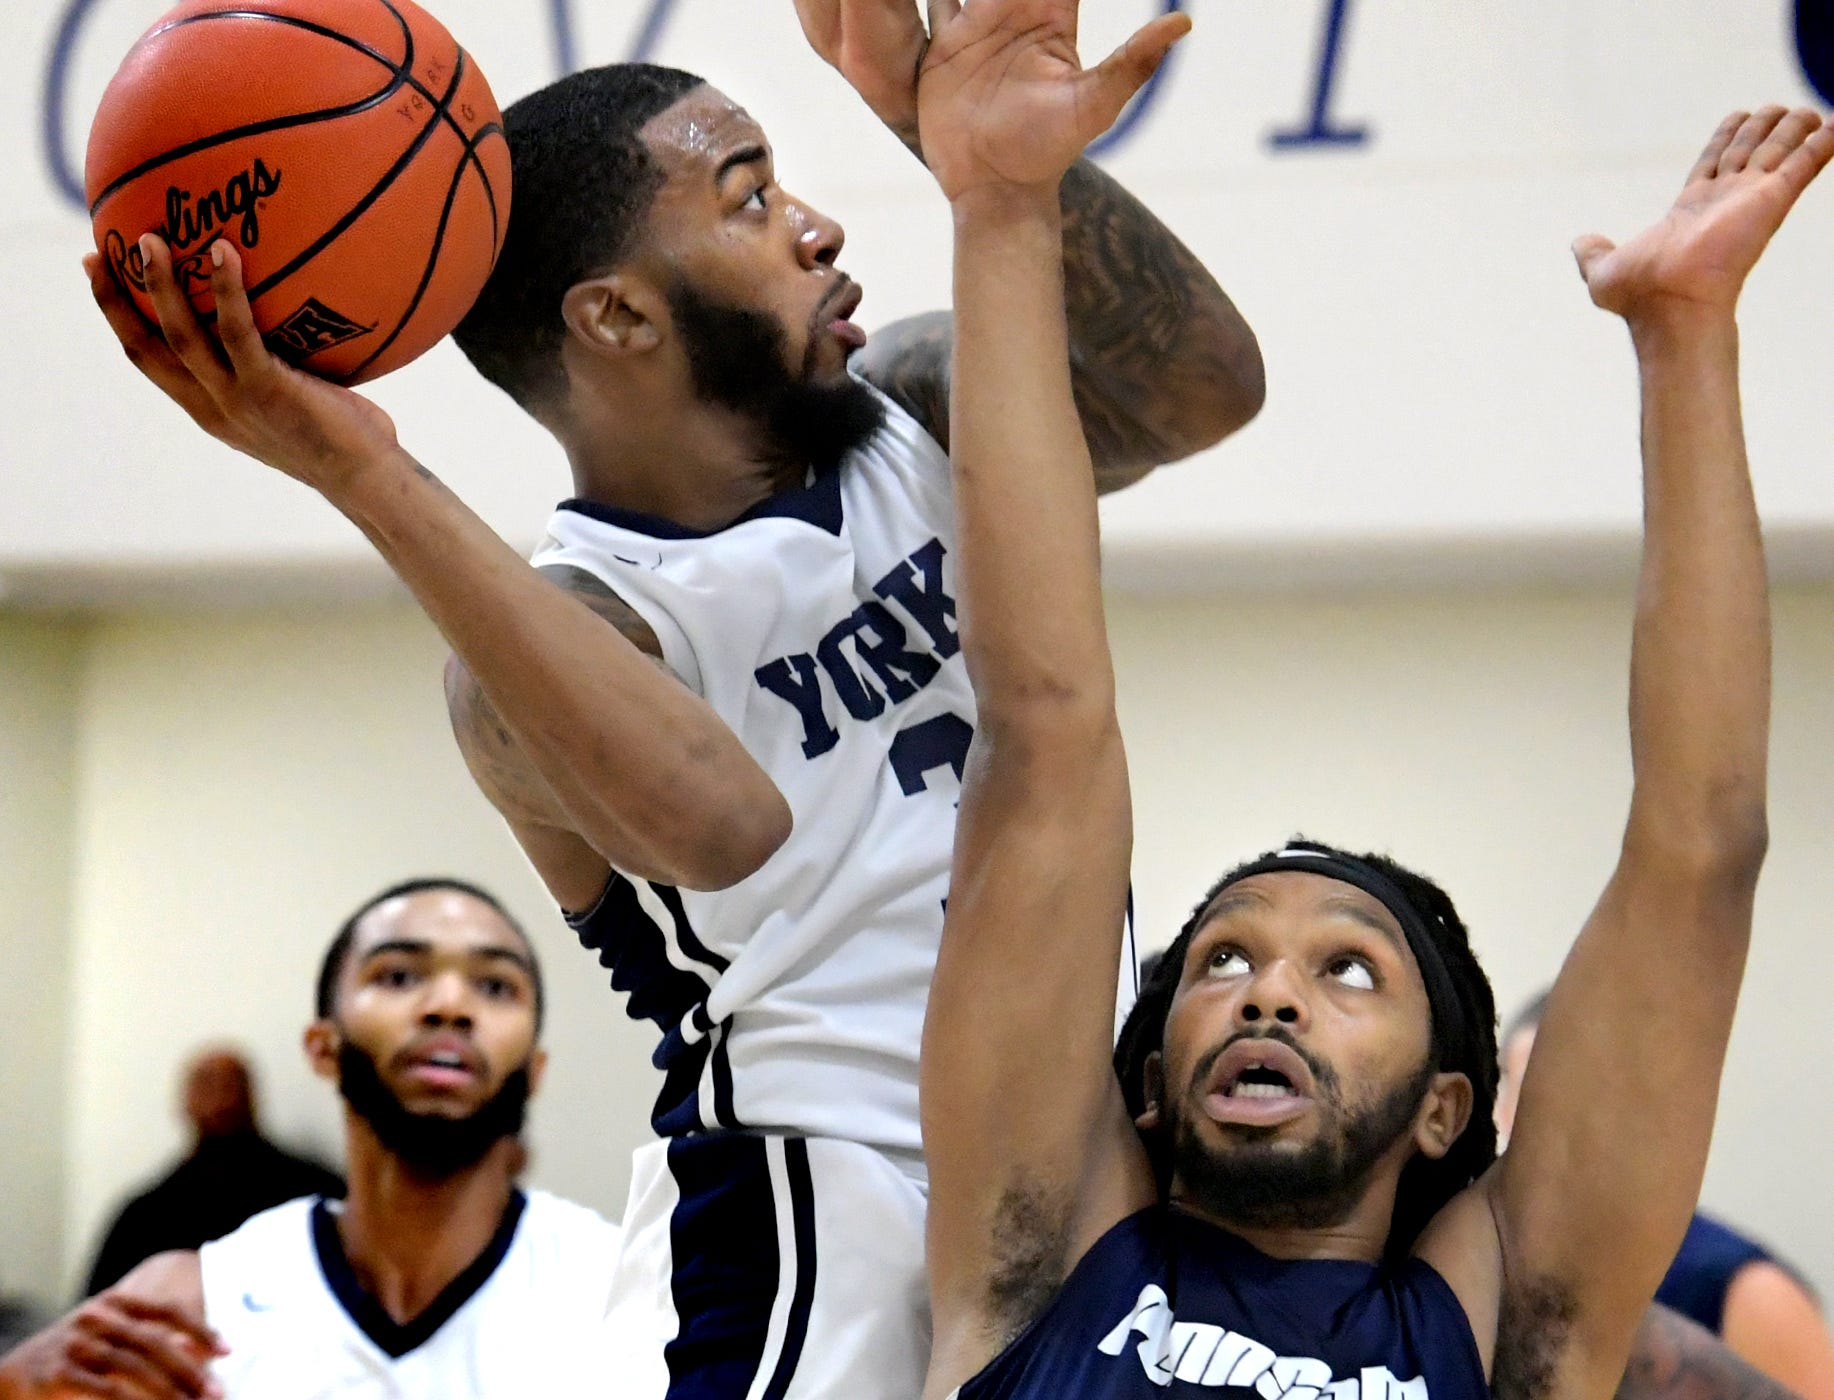 Penn State York's Anthony Bennett, Jr. drives over Penn State Wilkes-Barre's Ameer Biddle during action in York Tuesday, Nov. 27, 2018. Bill Kalina photo